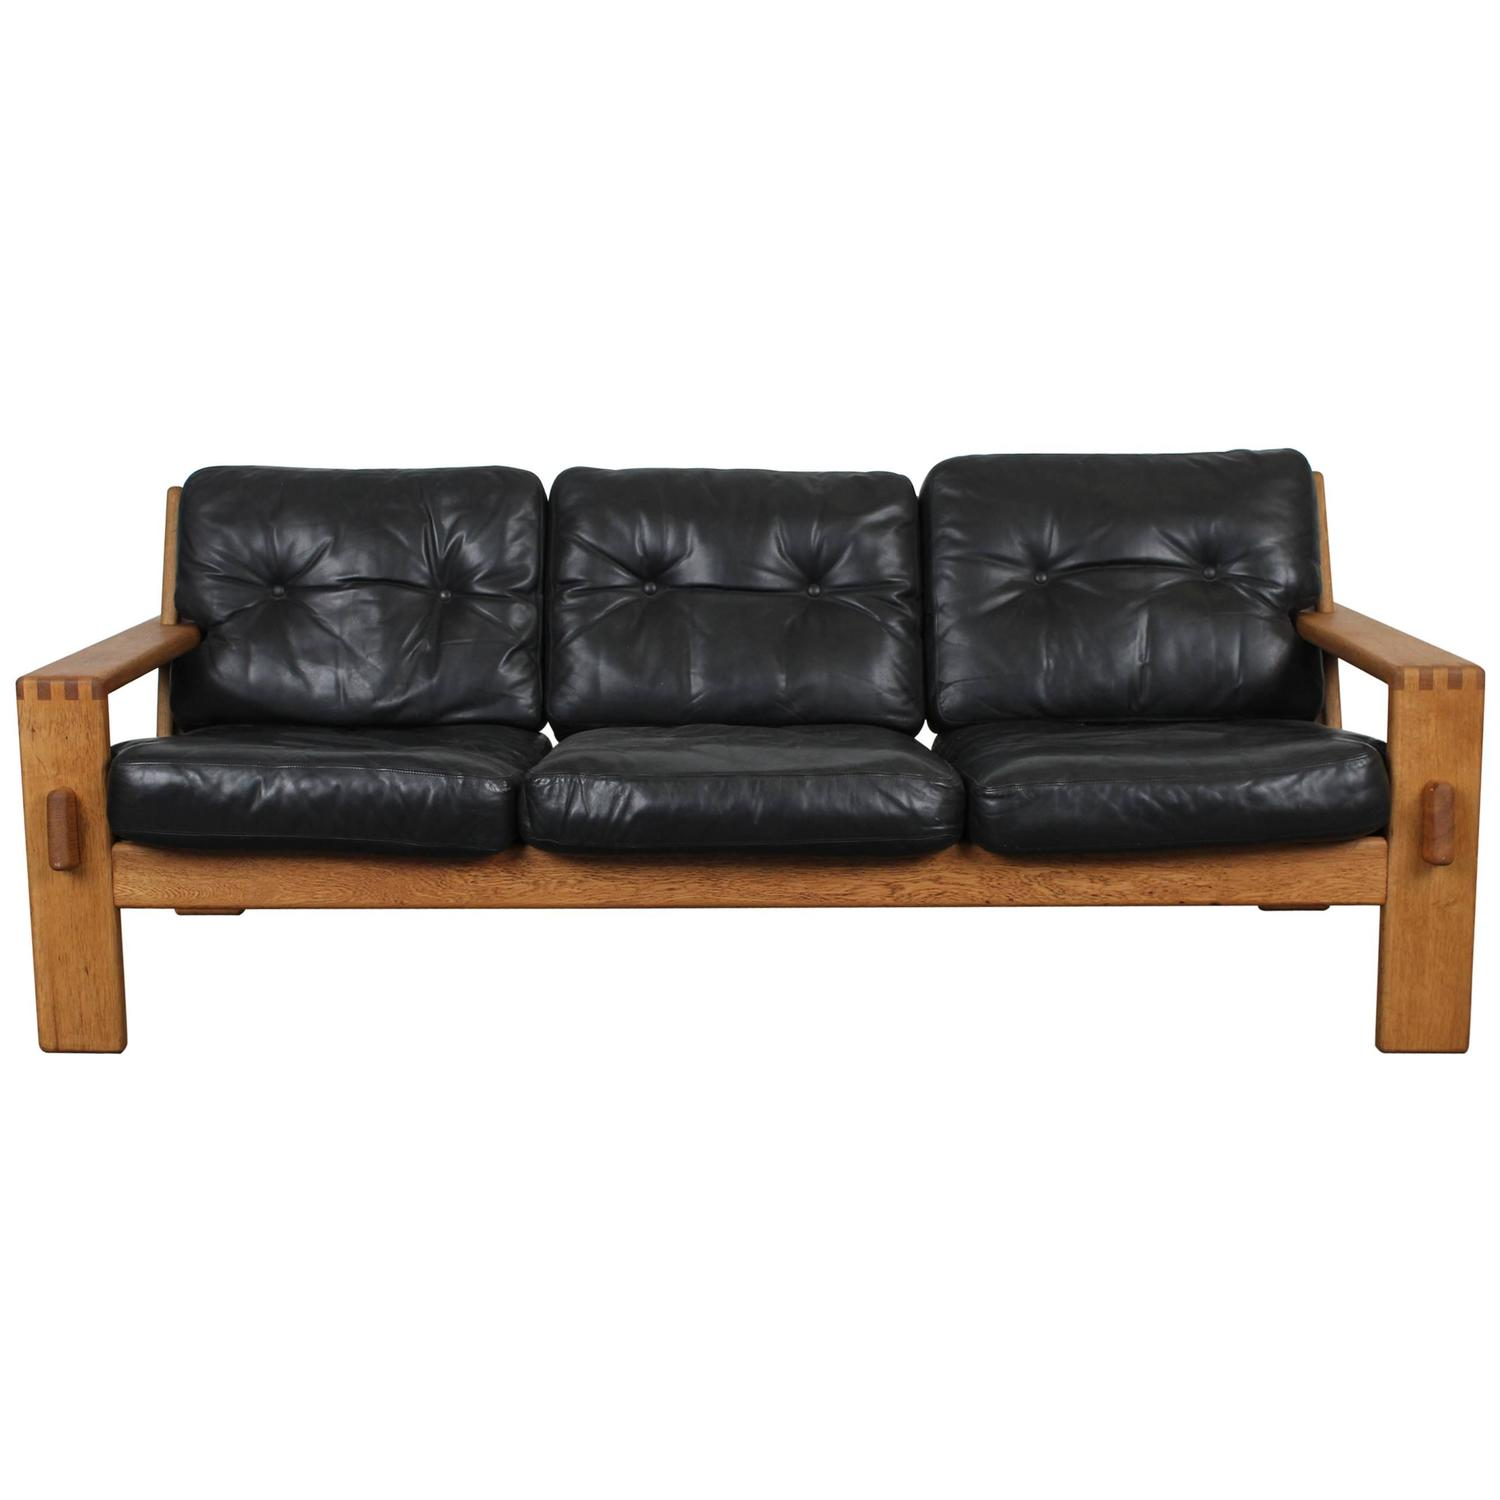 Danish Mid Century Modern Black Leather Oak Sofa by Esko Pajamies